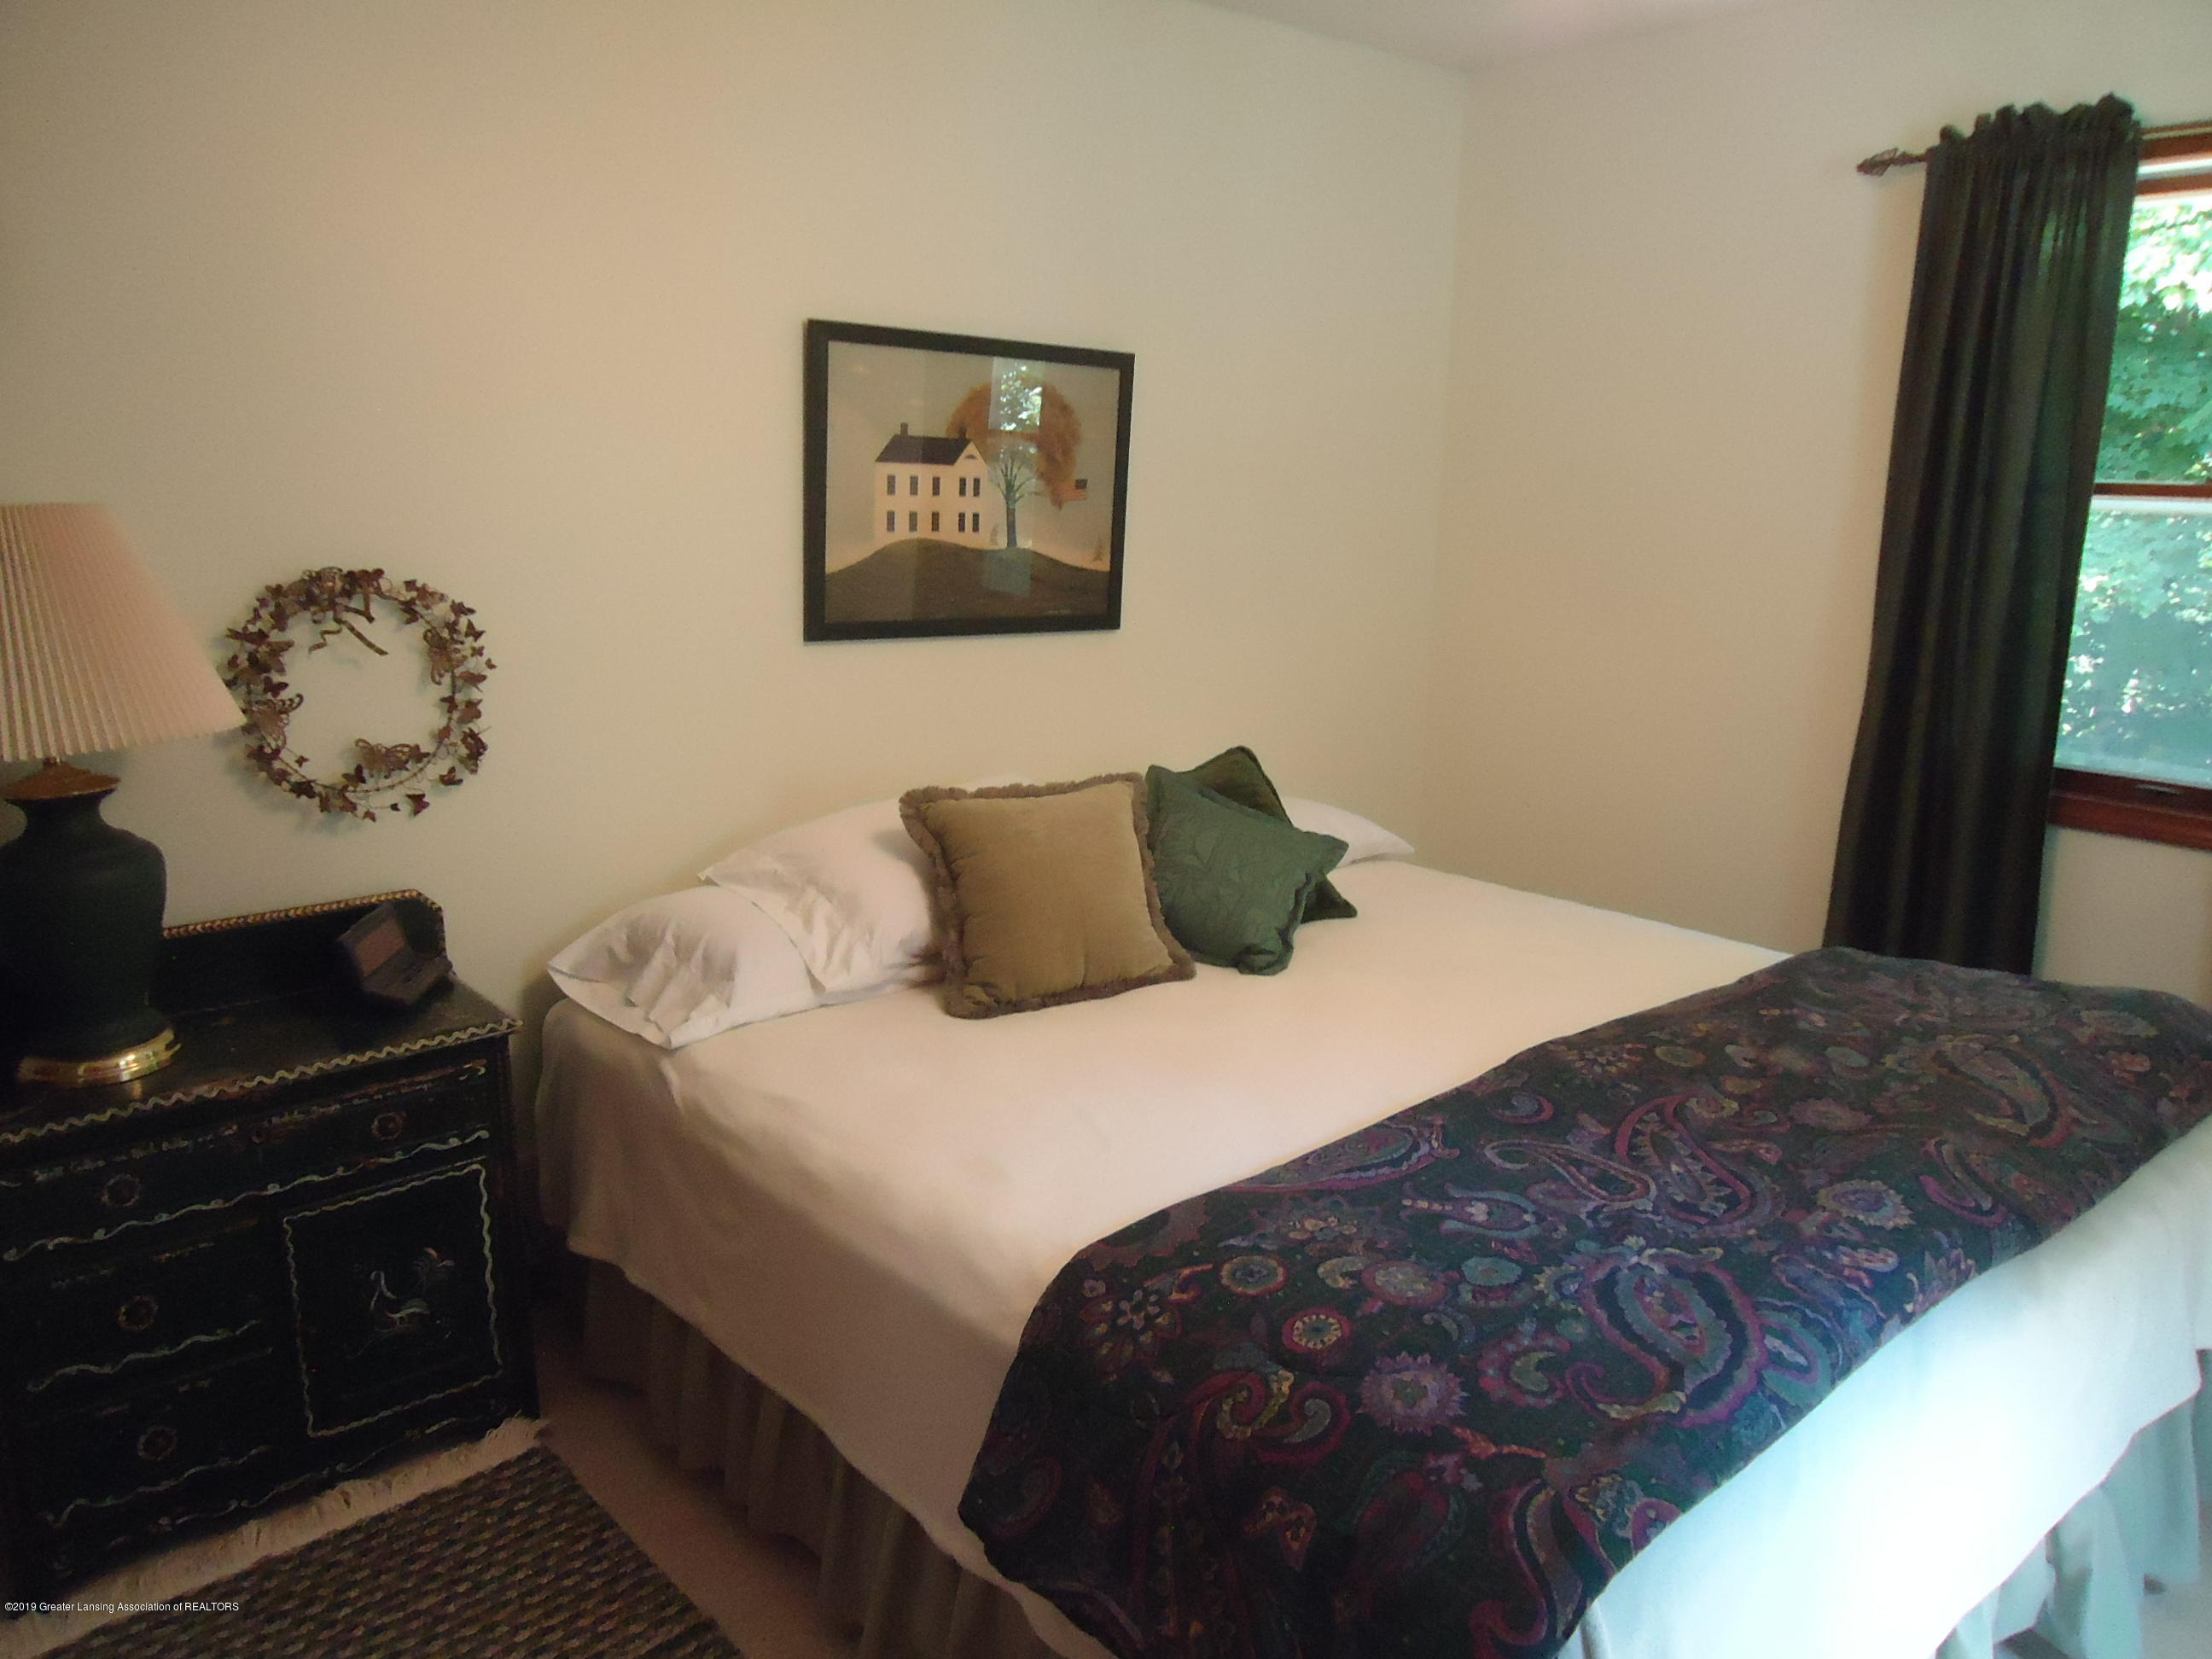 530 S Ainger Rd - Bedroom 2 - 24